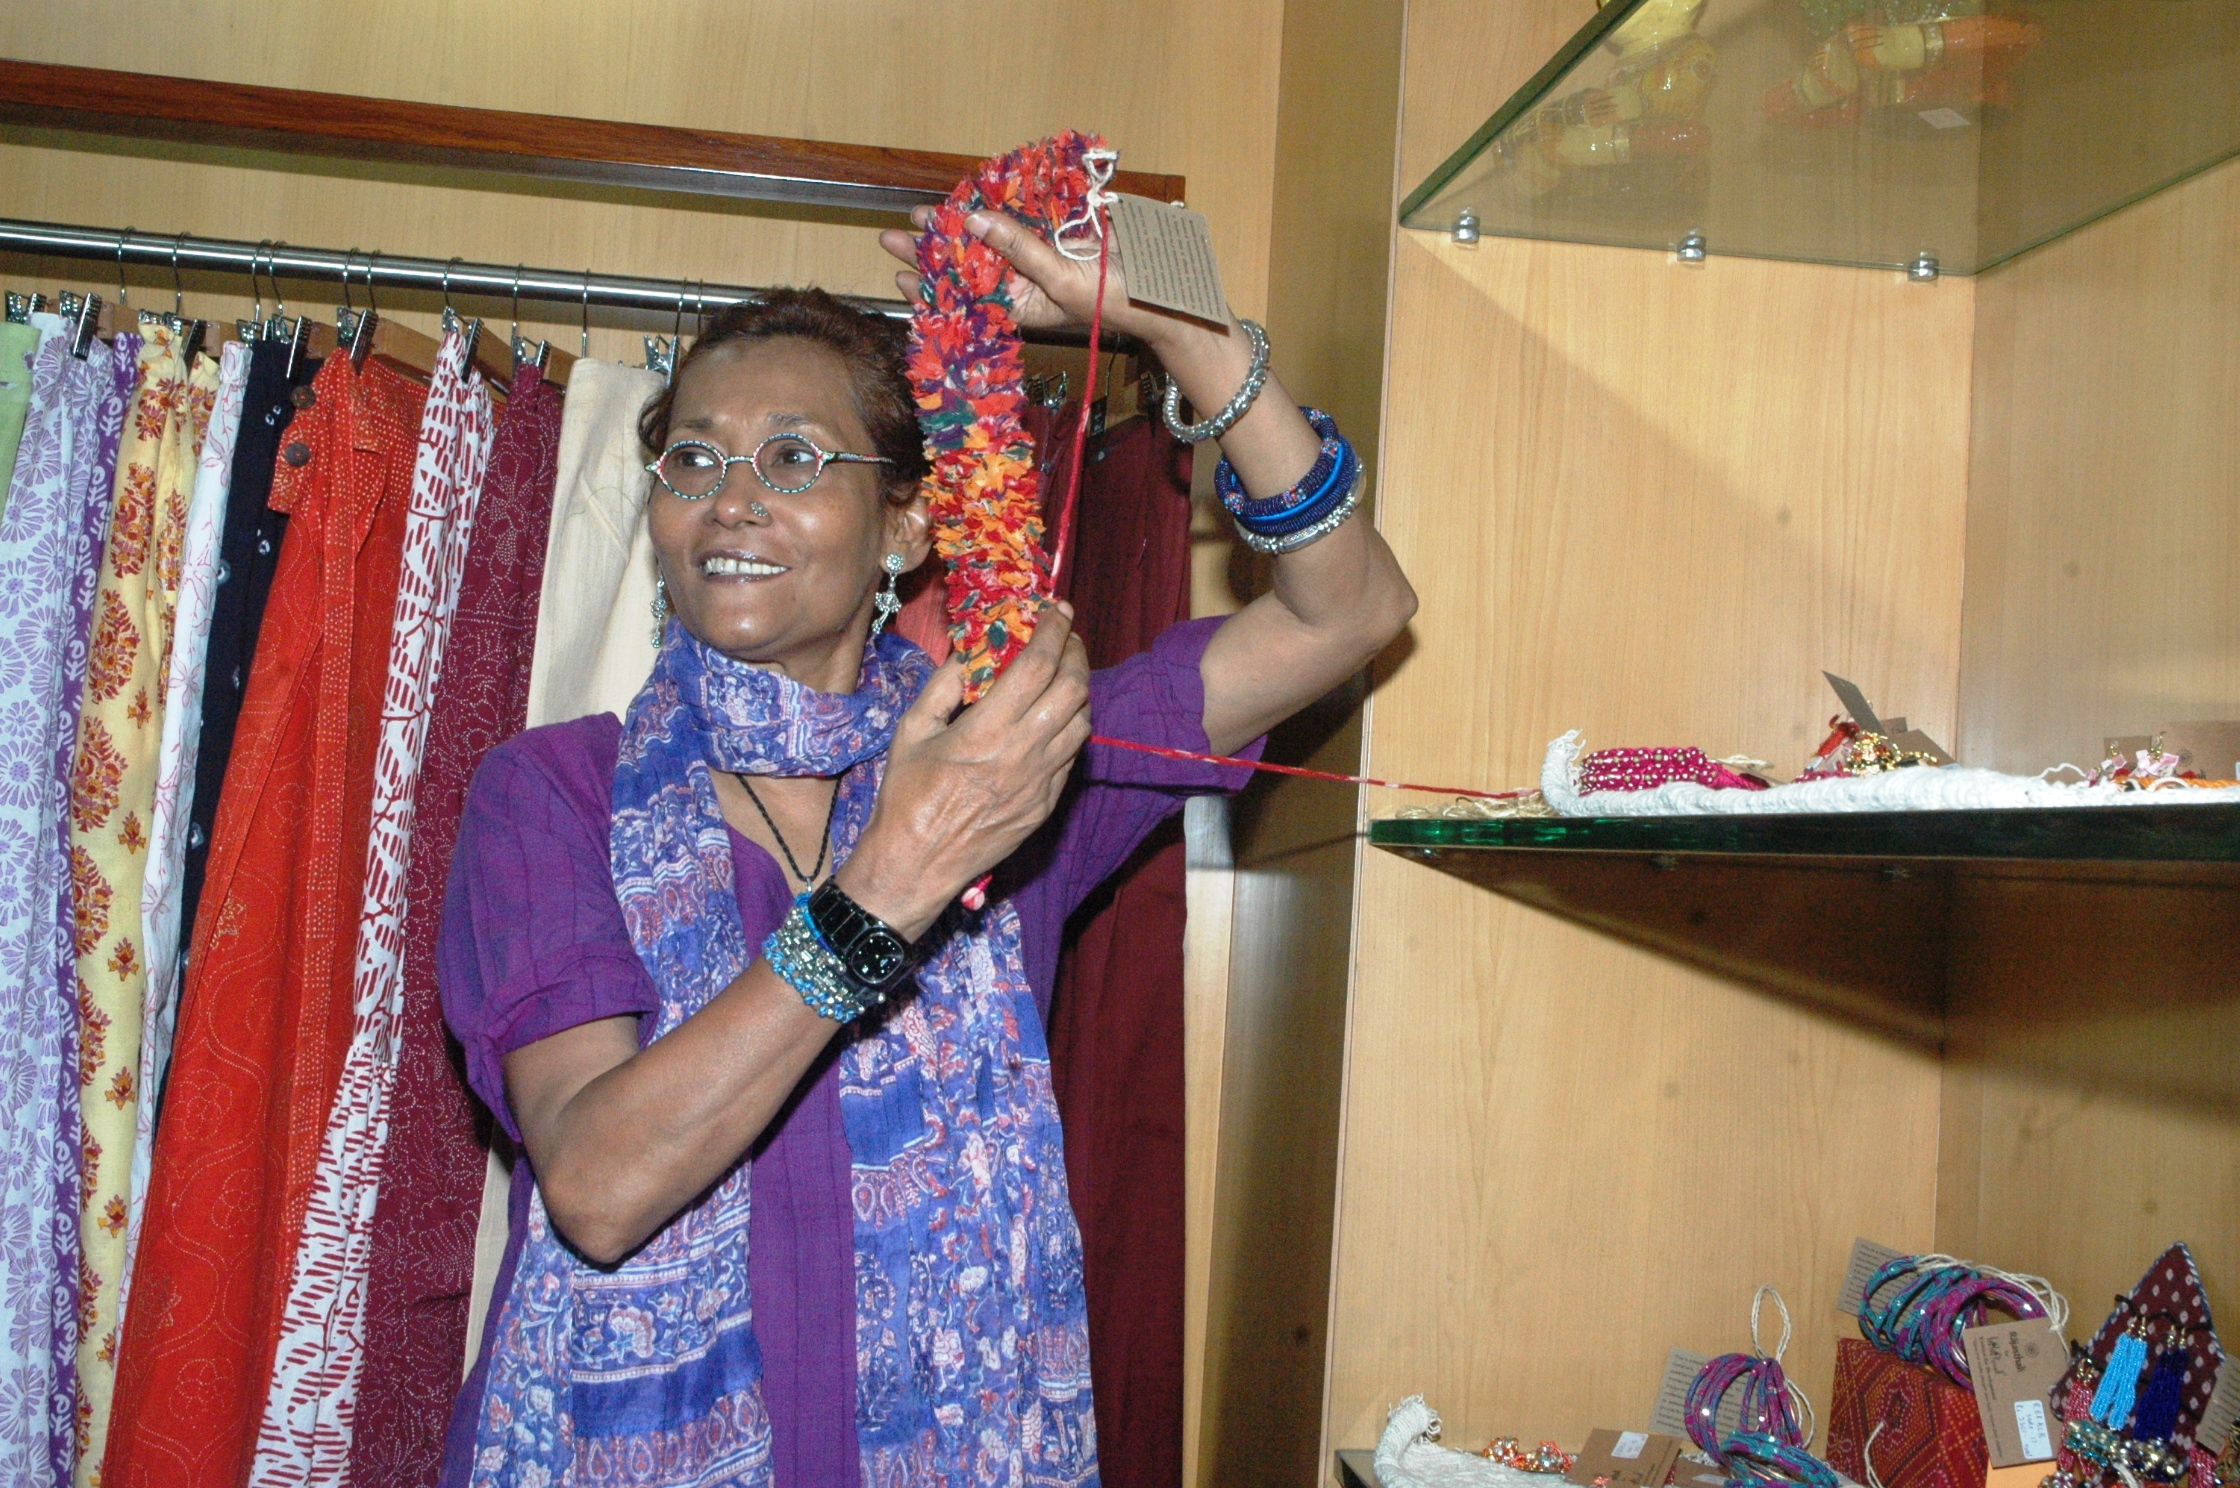 Bibi Russell designed products now available in Jaipur